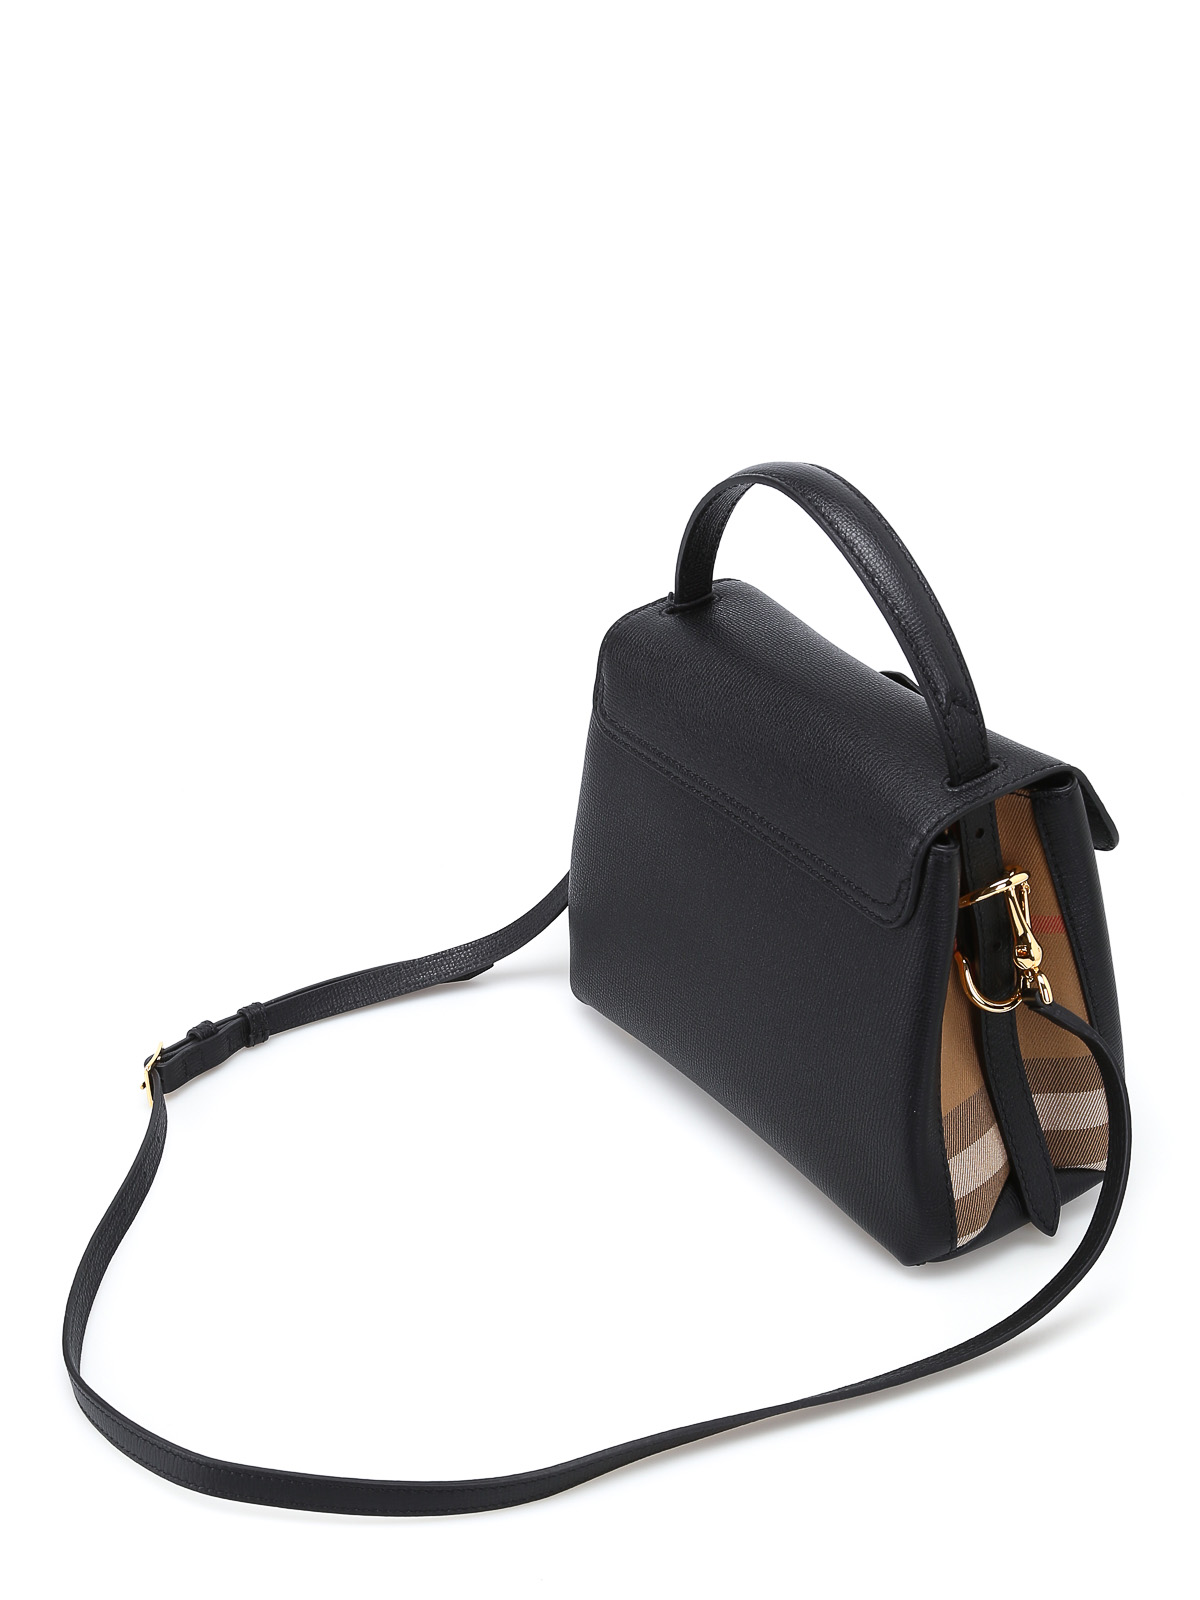 4e2bbe009cdf Burberry - Camberley small bowling bag - bowling bags - 4061171